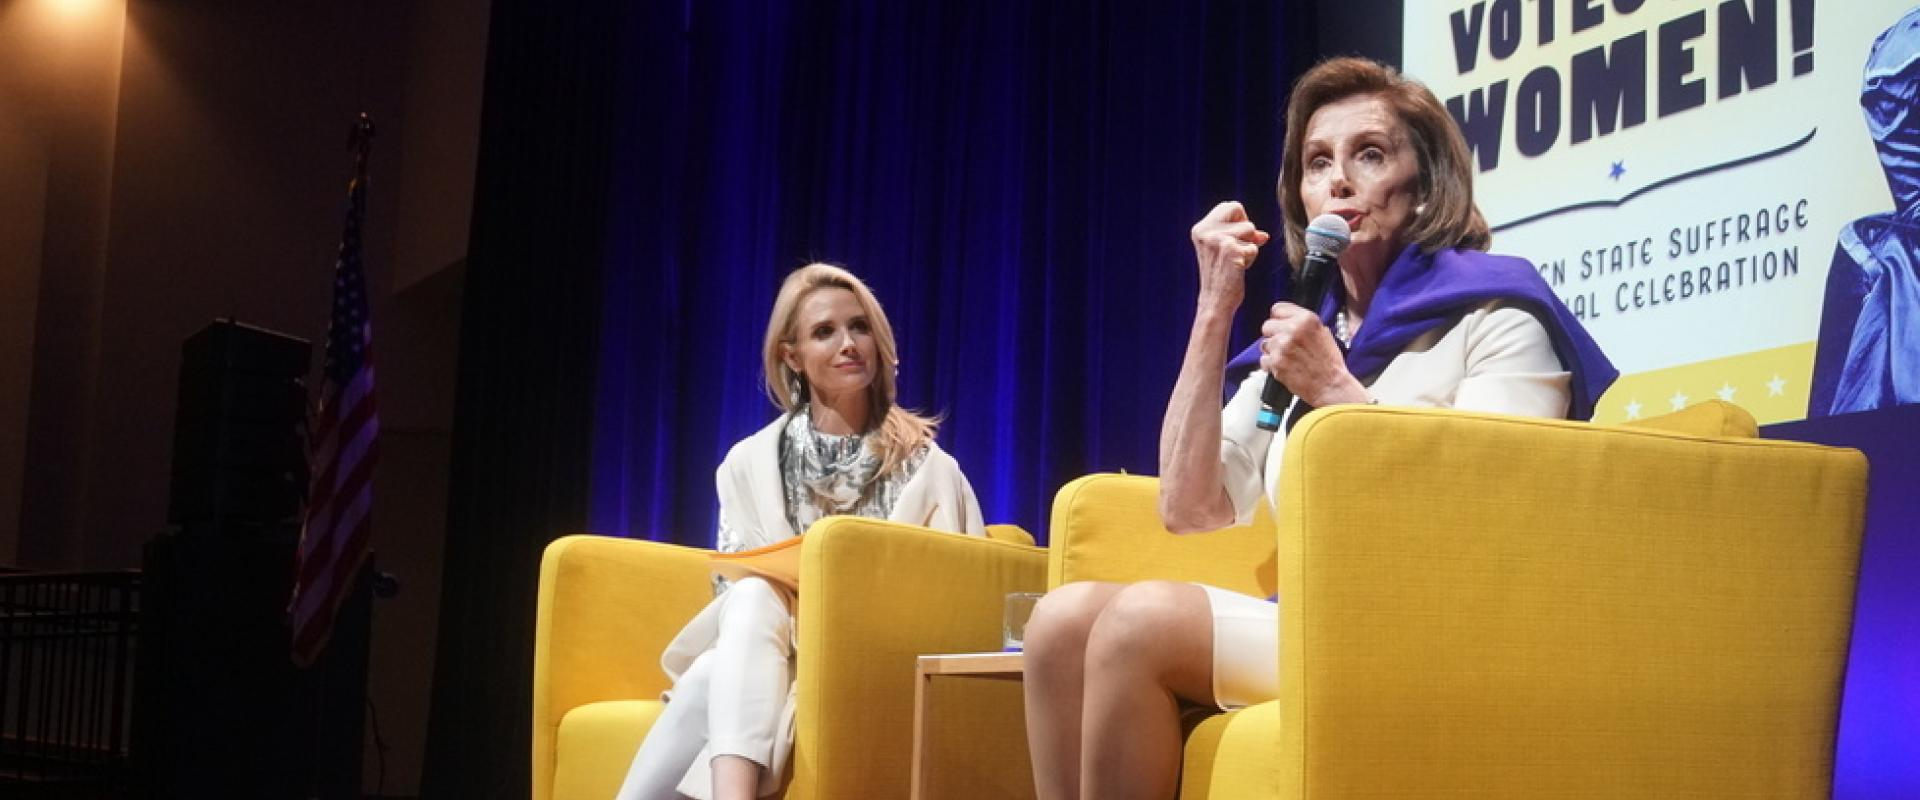 Congresswoman Nancy Pelosi joined California First Partner Jennifer Siebel Newsom in a moderated conversation commemorating California's ratification of the 19th Amendment at the California Museum in Sacramento, California.